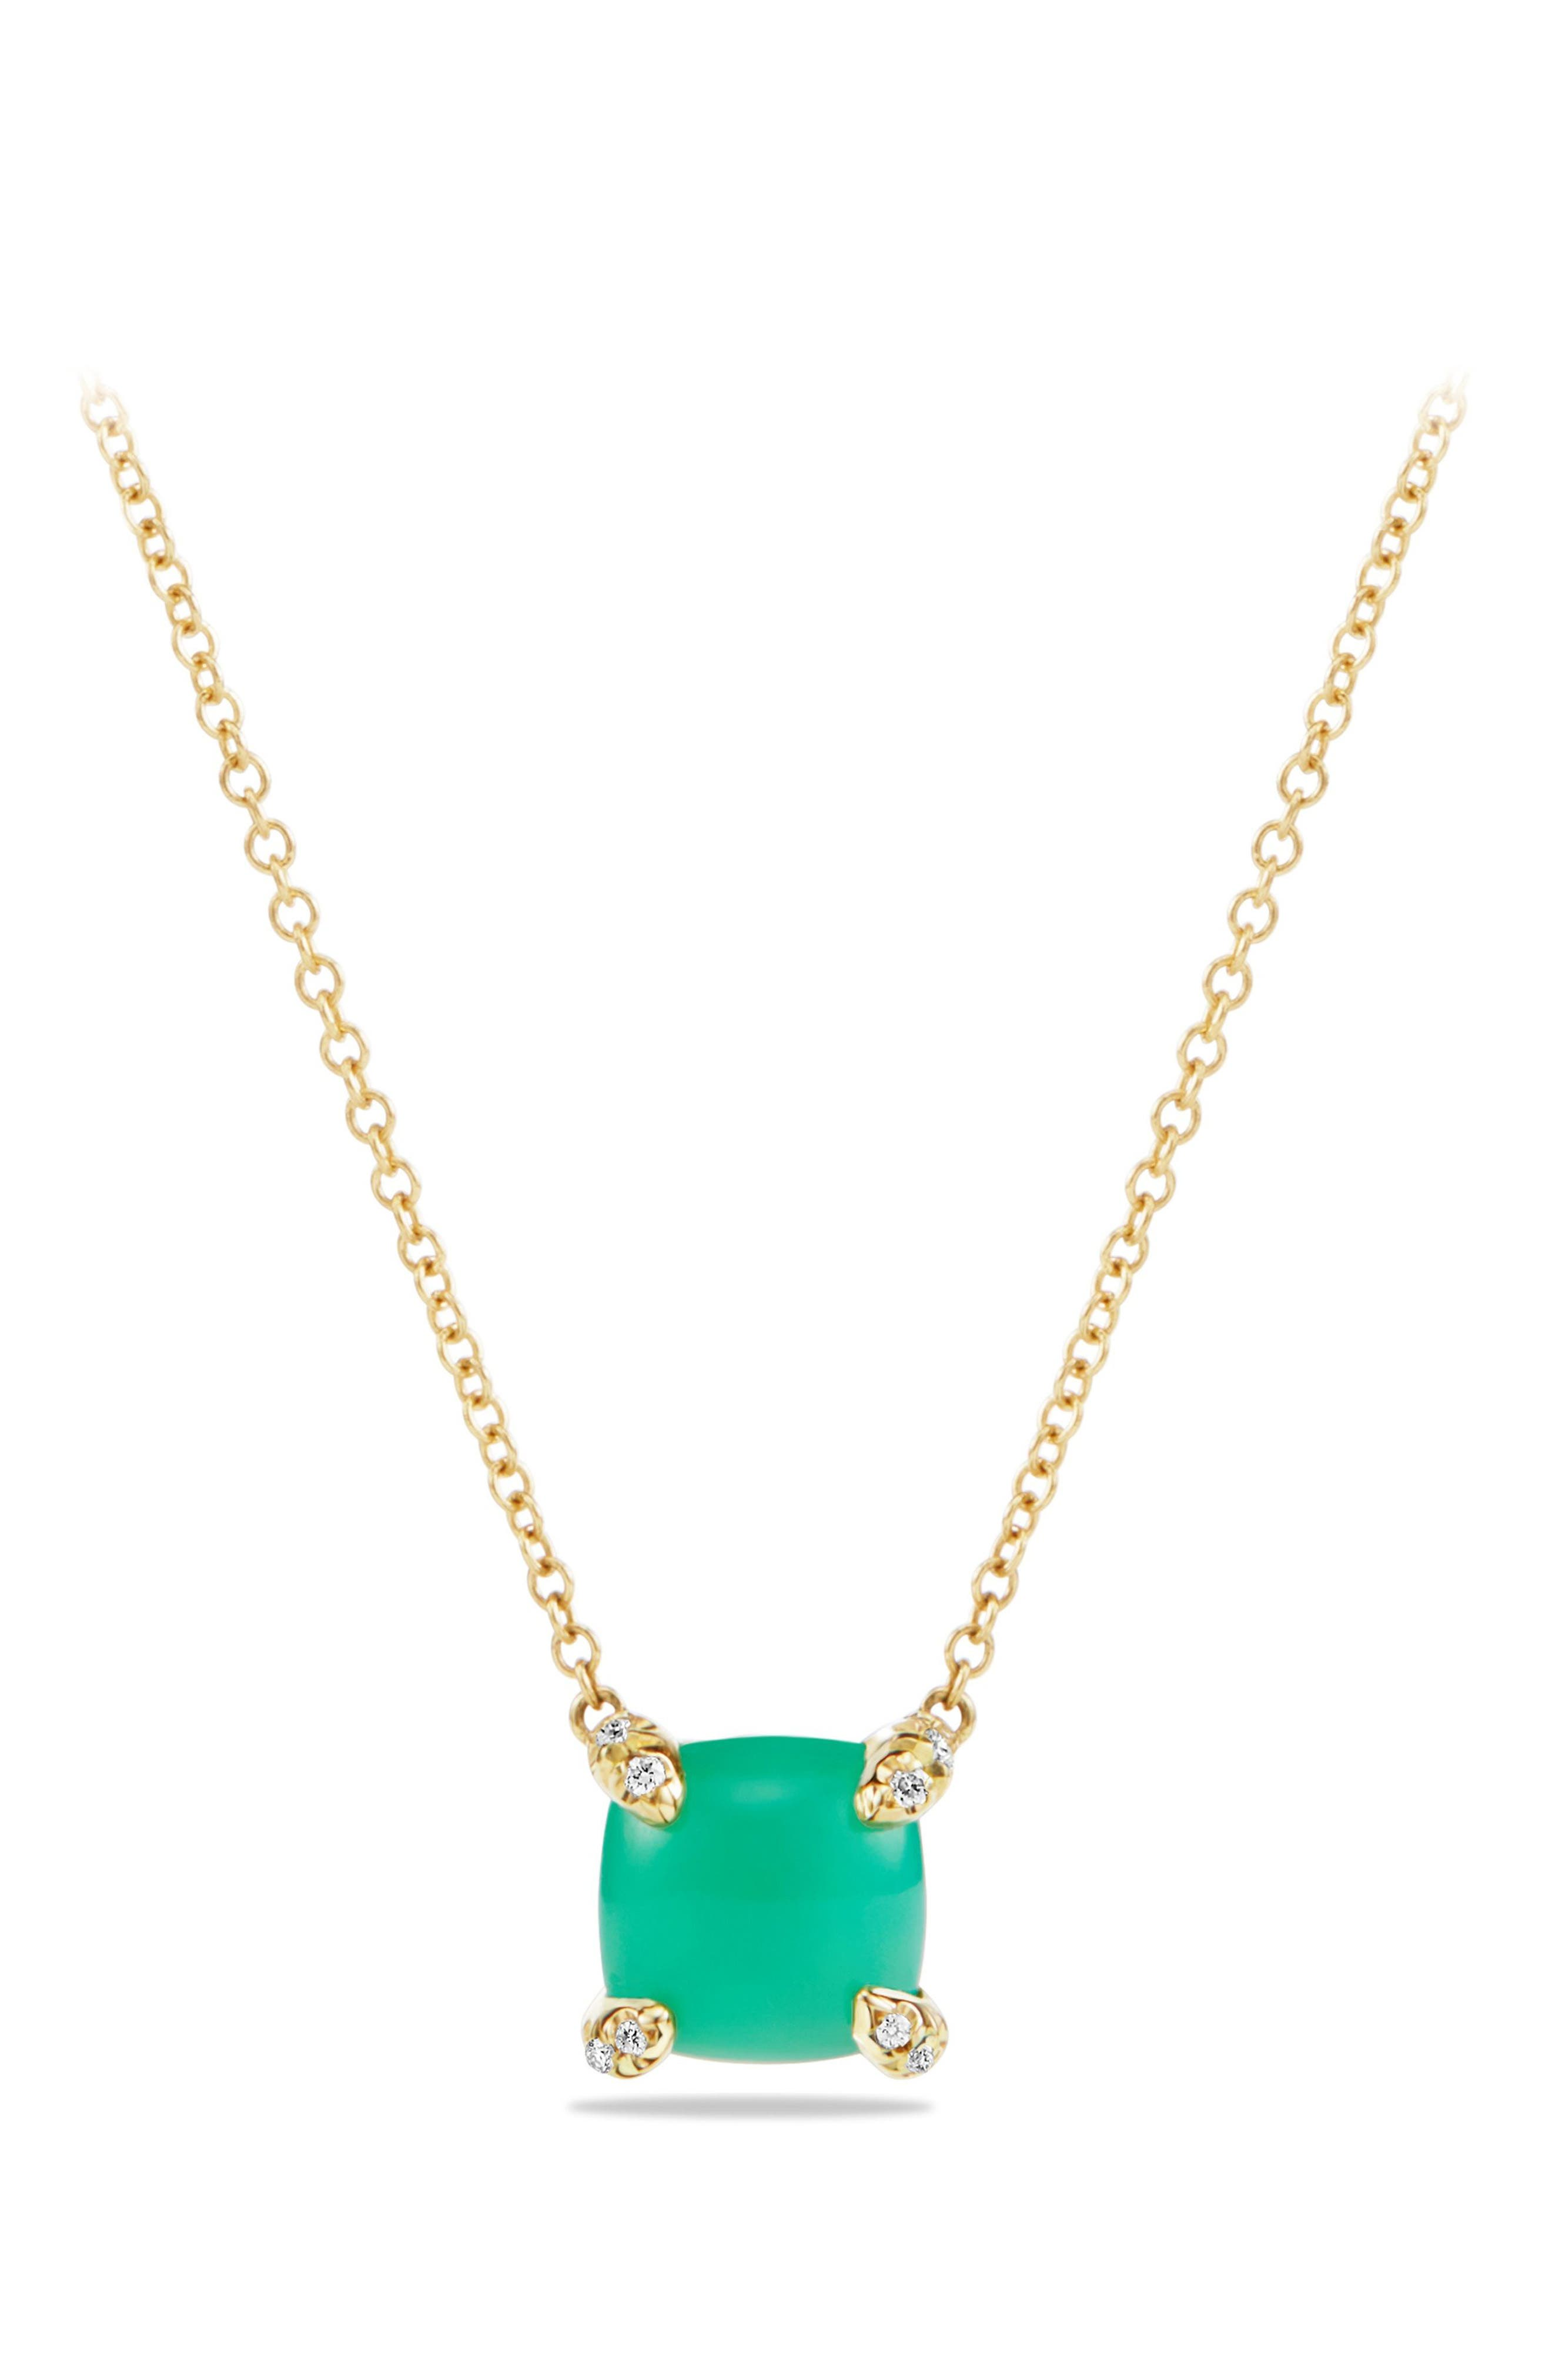 'Châtelaine' Pendant Necklace with Semiprecious Stone and Diamonds in 18K Gold,                             Main thumbnail 1, color,                             CHRYSOPRASE